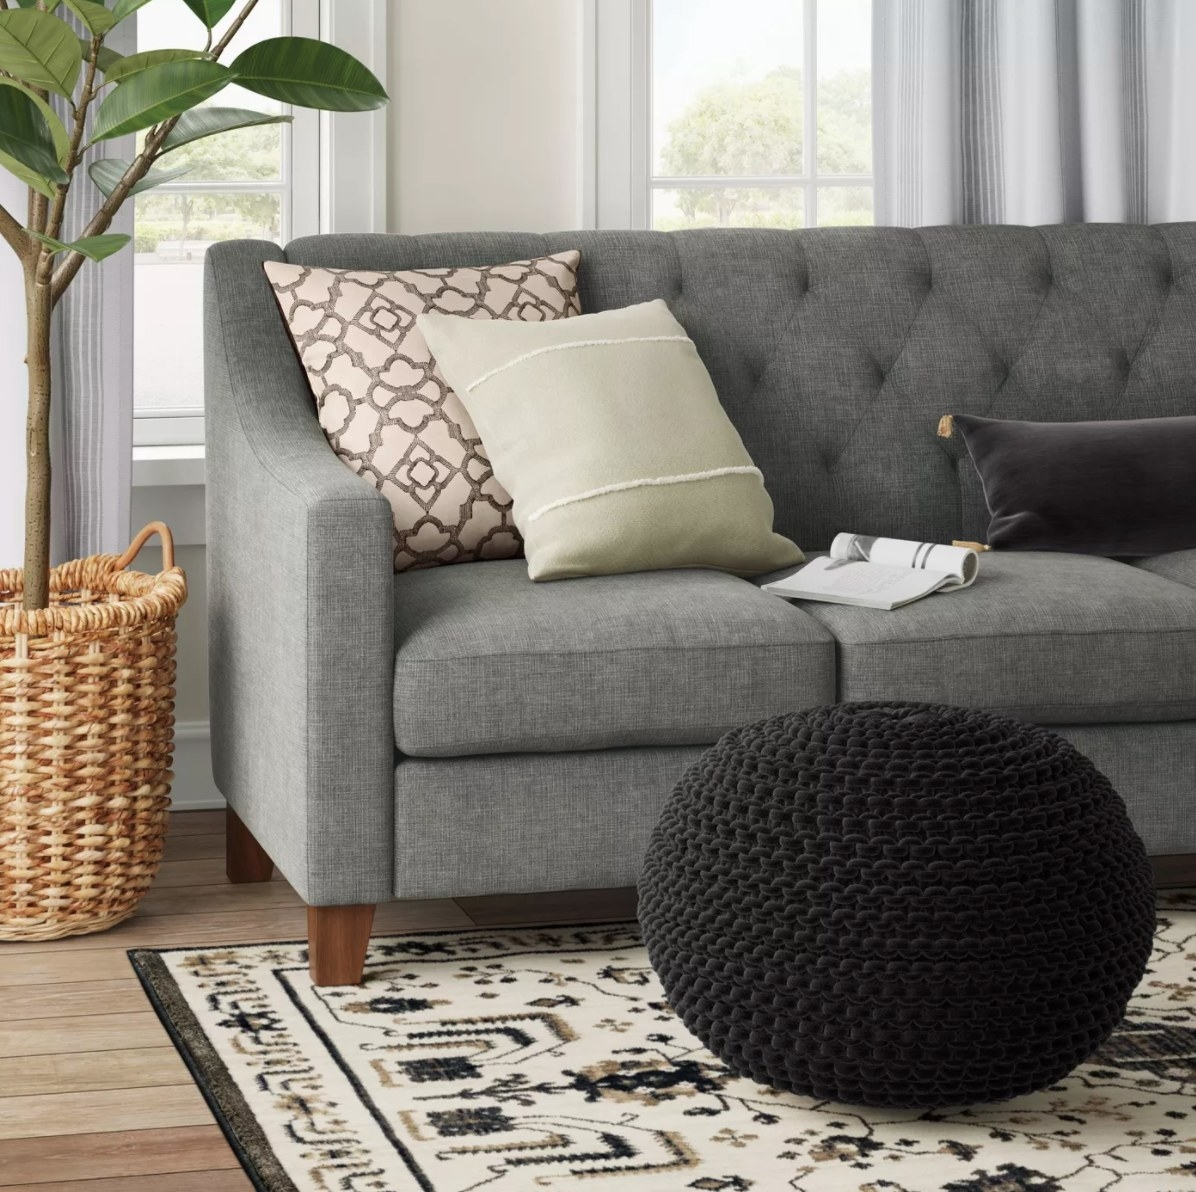 The chunky knit pouf in black sitting in front of a gray tufted sofa